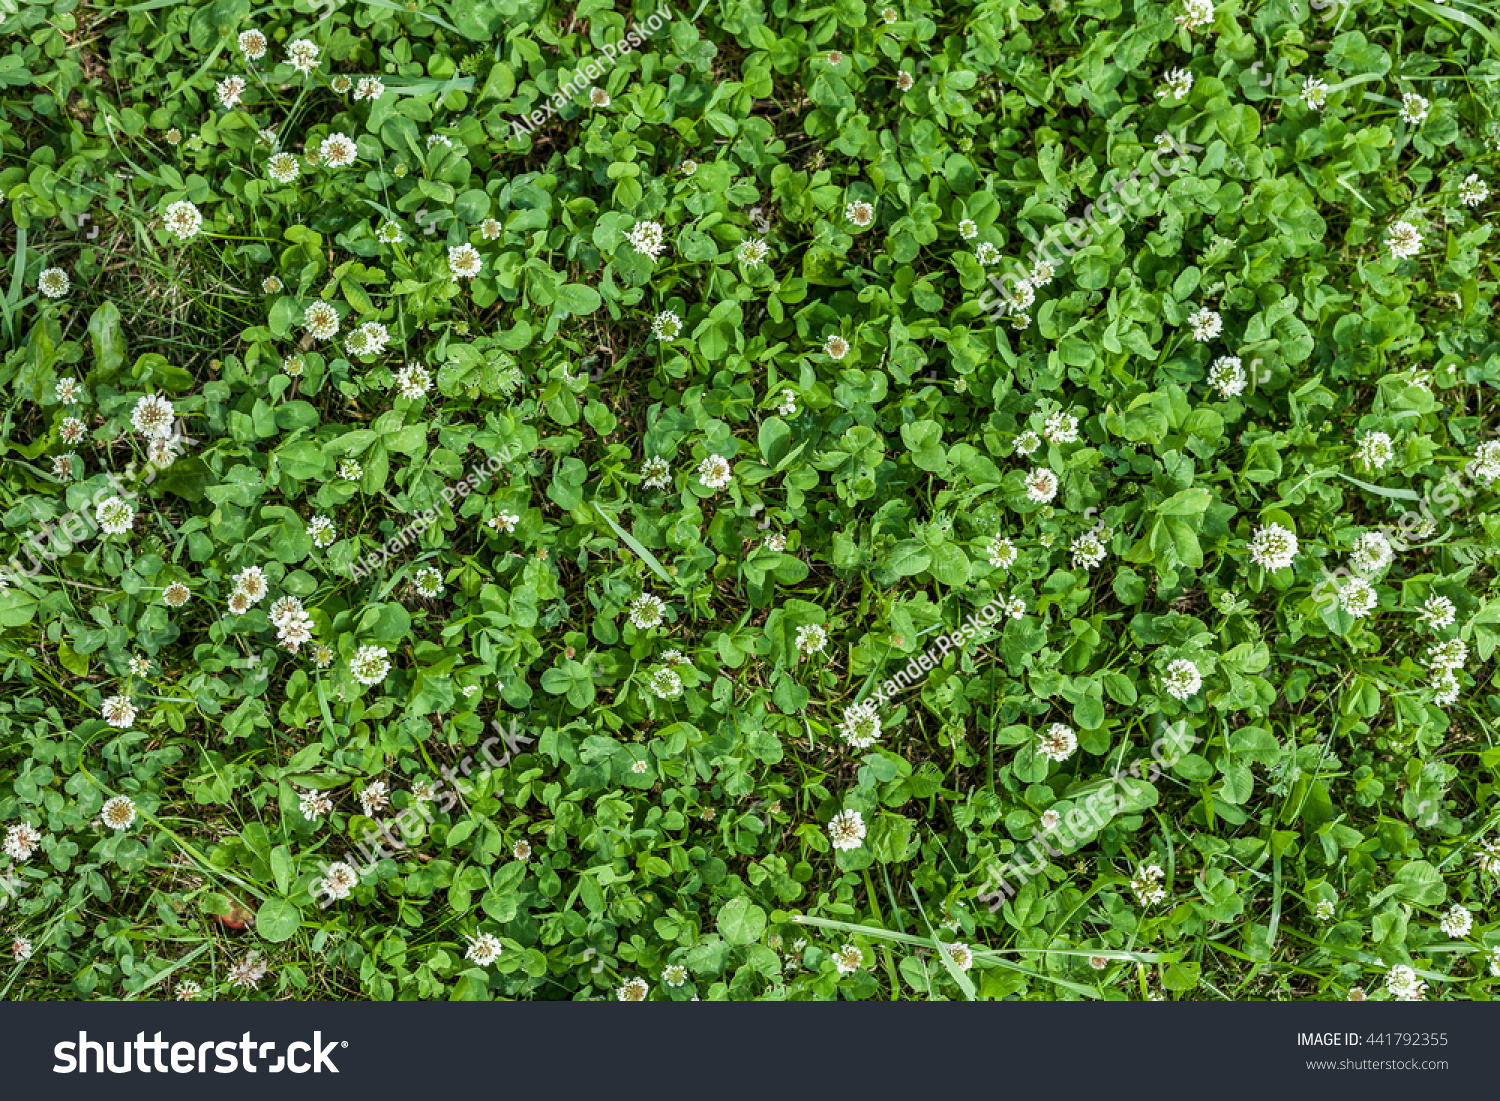 Texture grass white flowers clover trefoil stock photo edit now texture of grass with white flowers clover trefoil surrounded grass top view close mightylinksfo